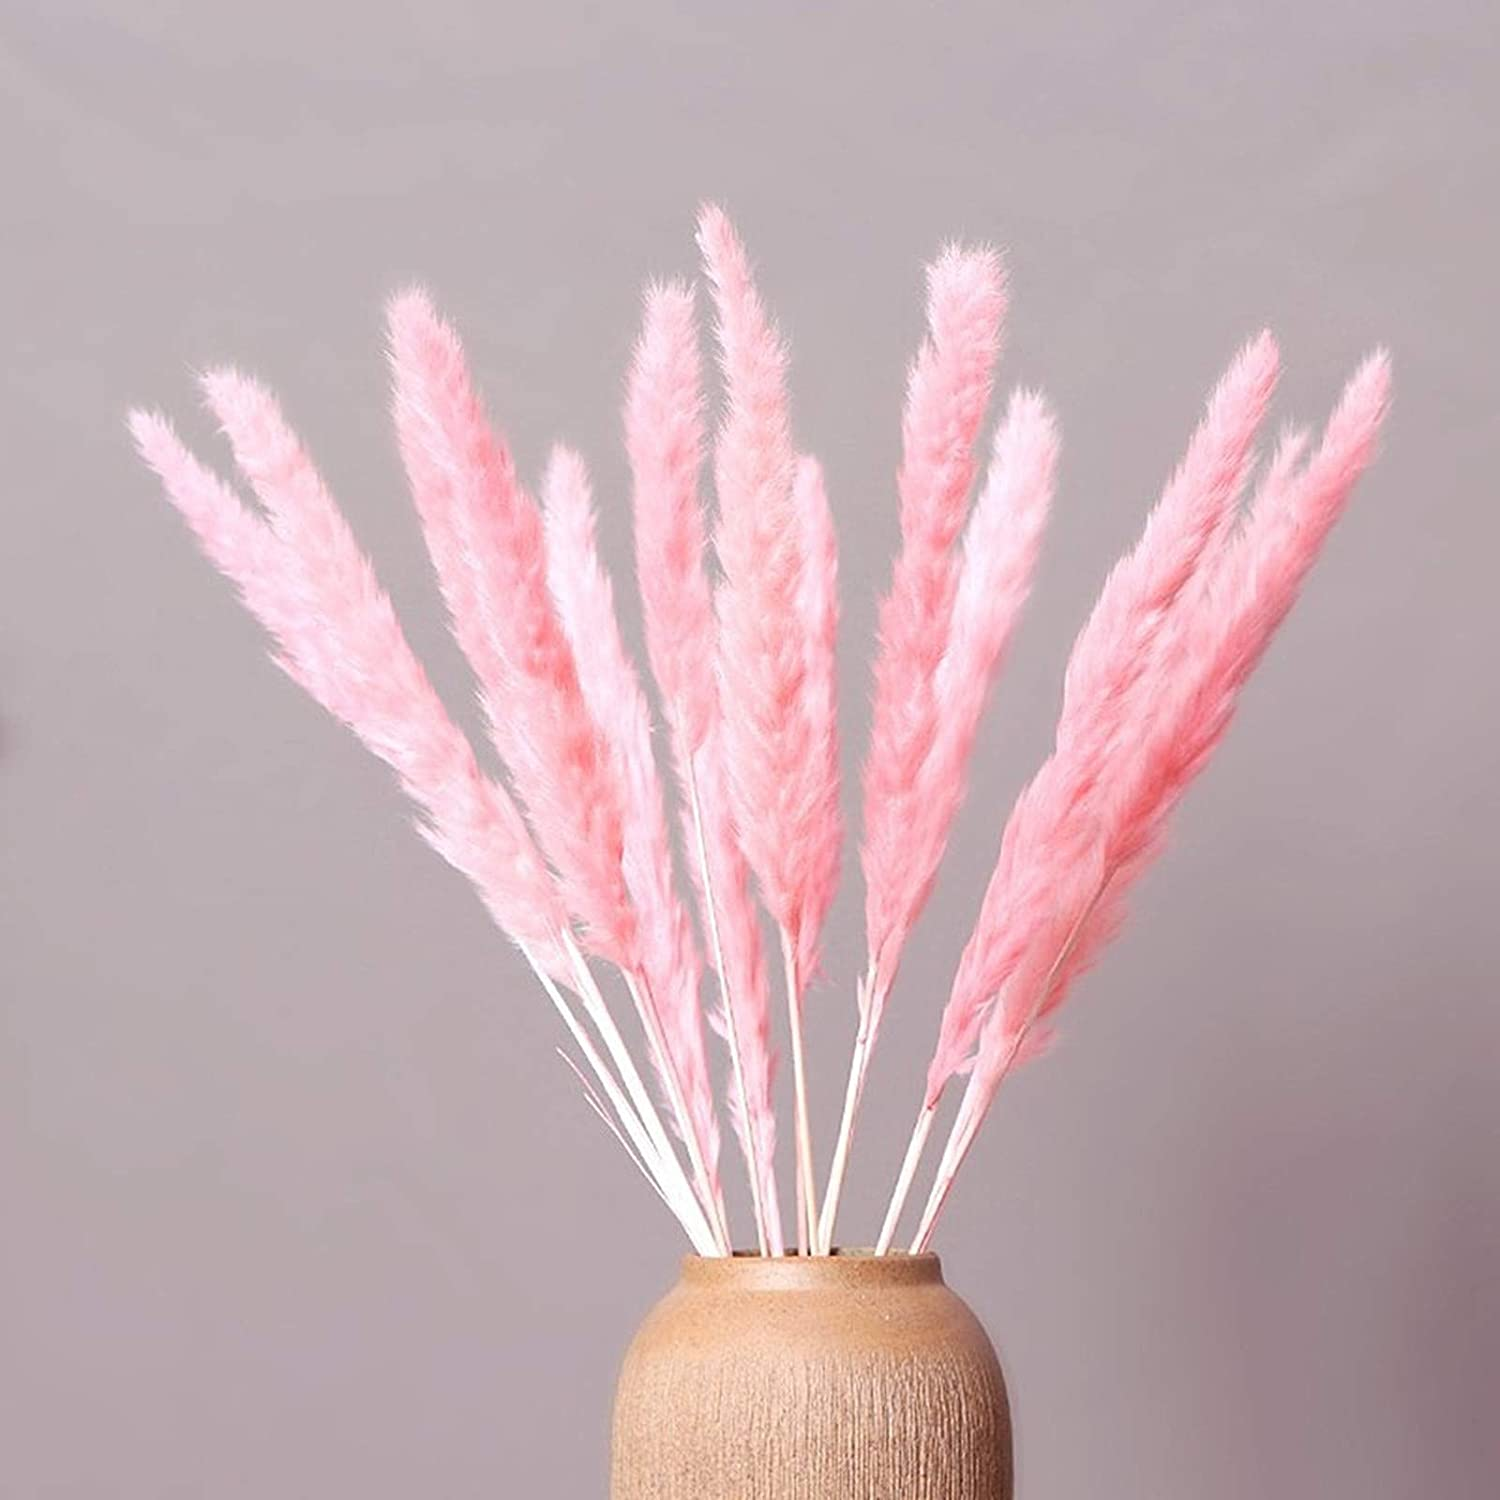 XIYUAN Natural Dried Reed Flowers,Dried Pampas Grass Plumes 30pcs 17 Inch Tall Natural Phragmites Artificial Faux Reed Flower Stems Bunch -for Home Decoration, Wedding Photo Props (Pink)